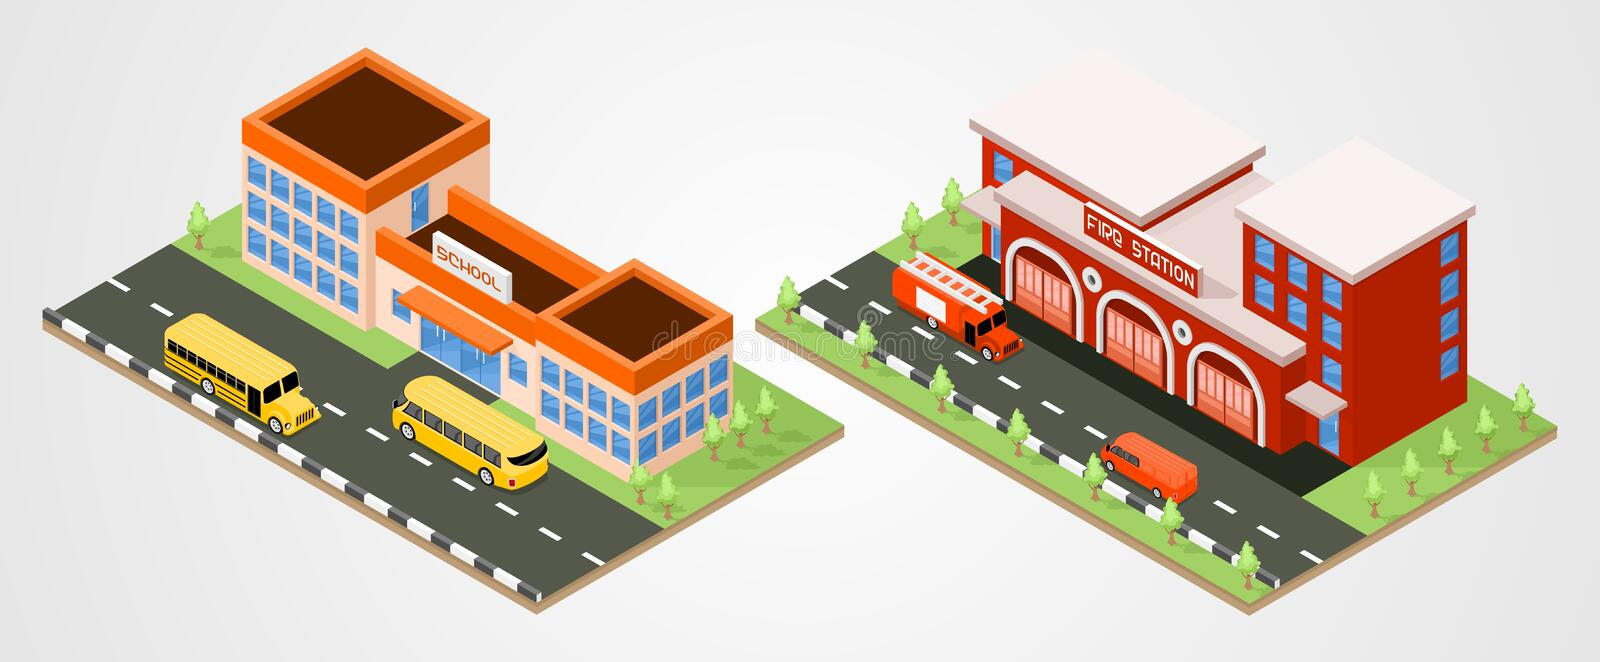 School and fire station royalty free illustration